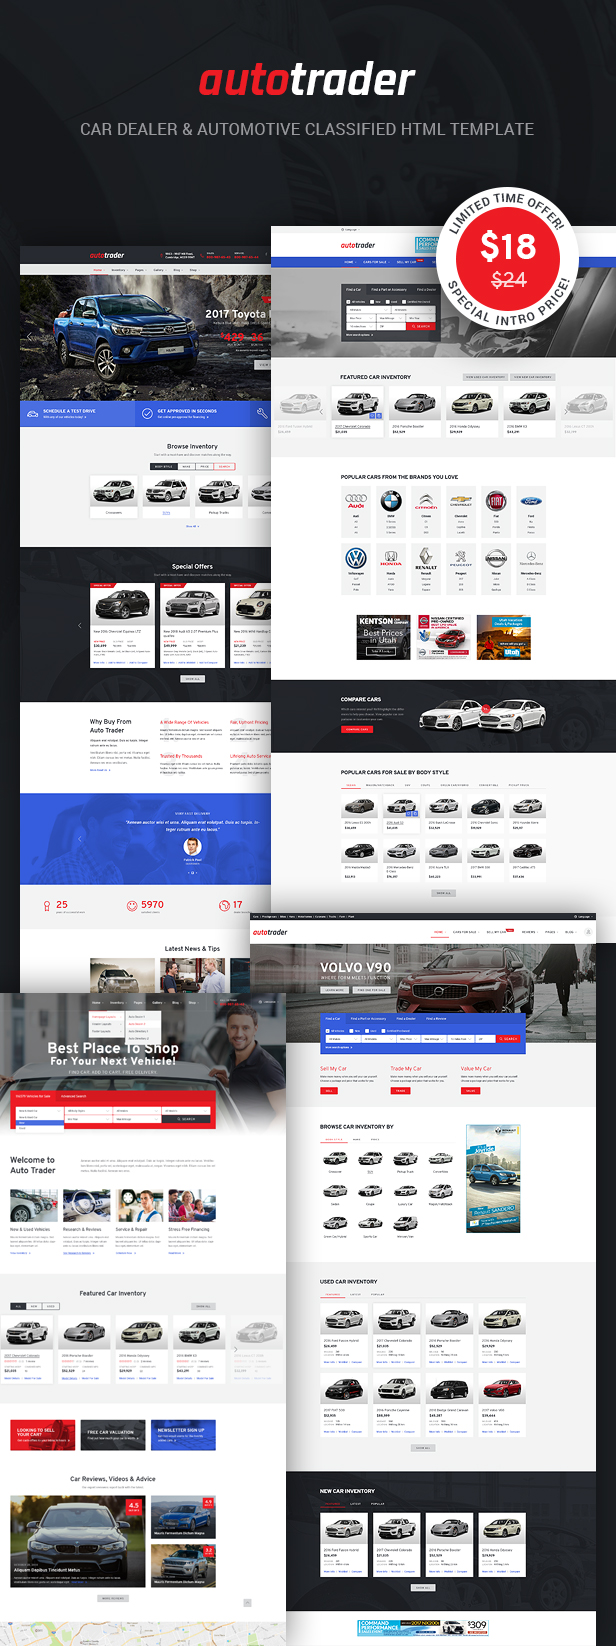 Autotrader is the best choice for car dealer dealership car listing template classified template and car rental template